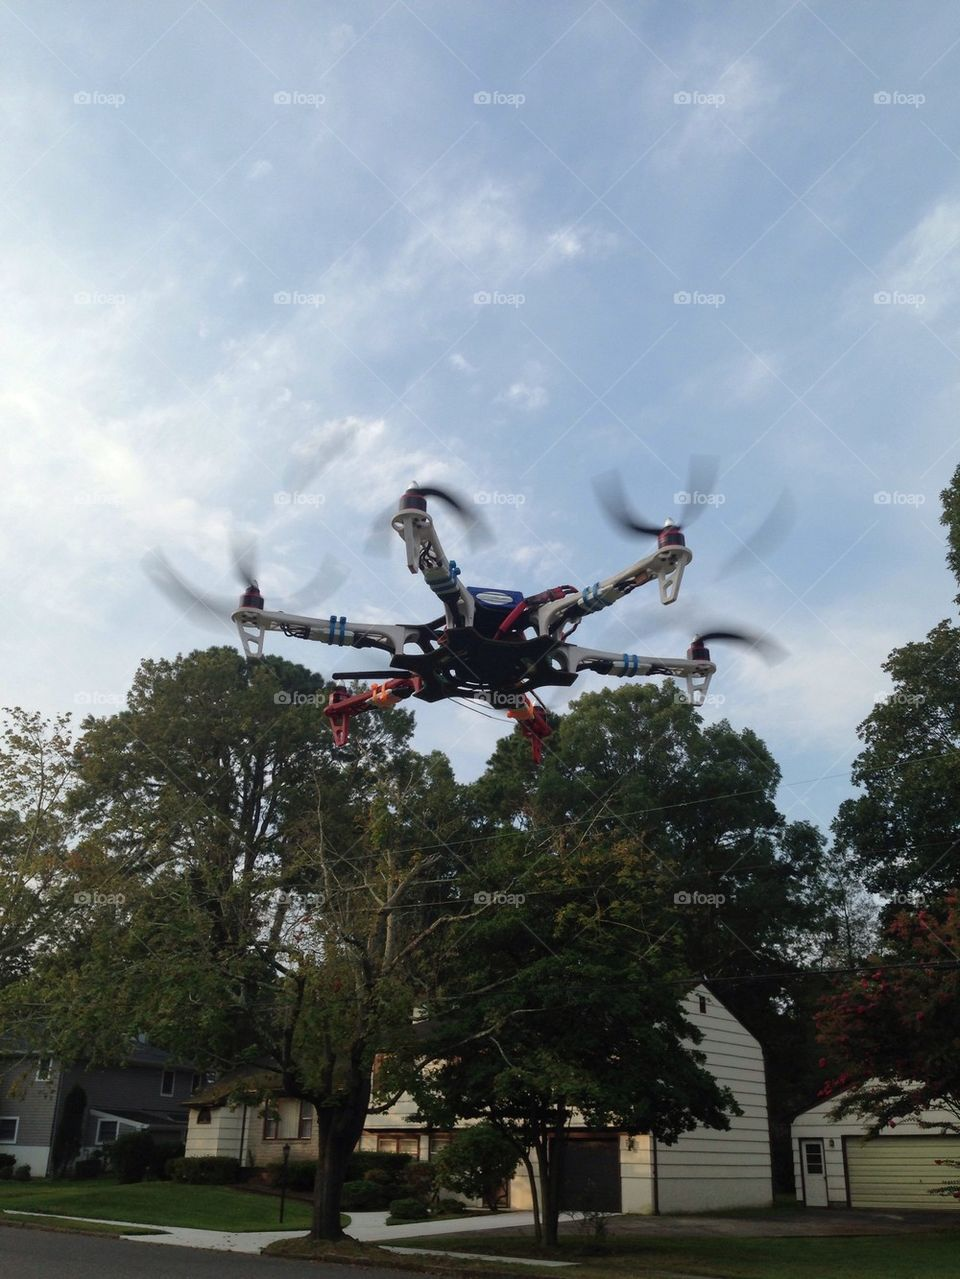 Unmanned aerial vehicle. Hexacopter hovering